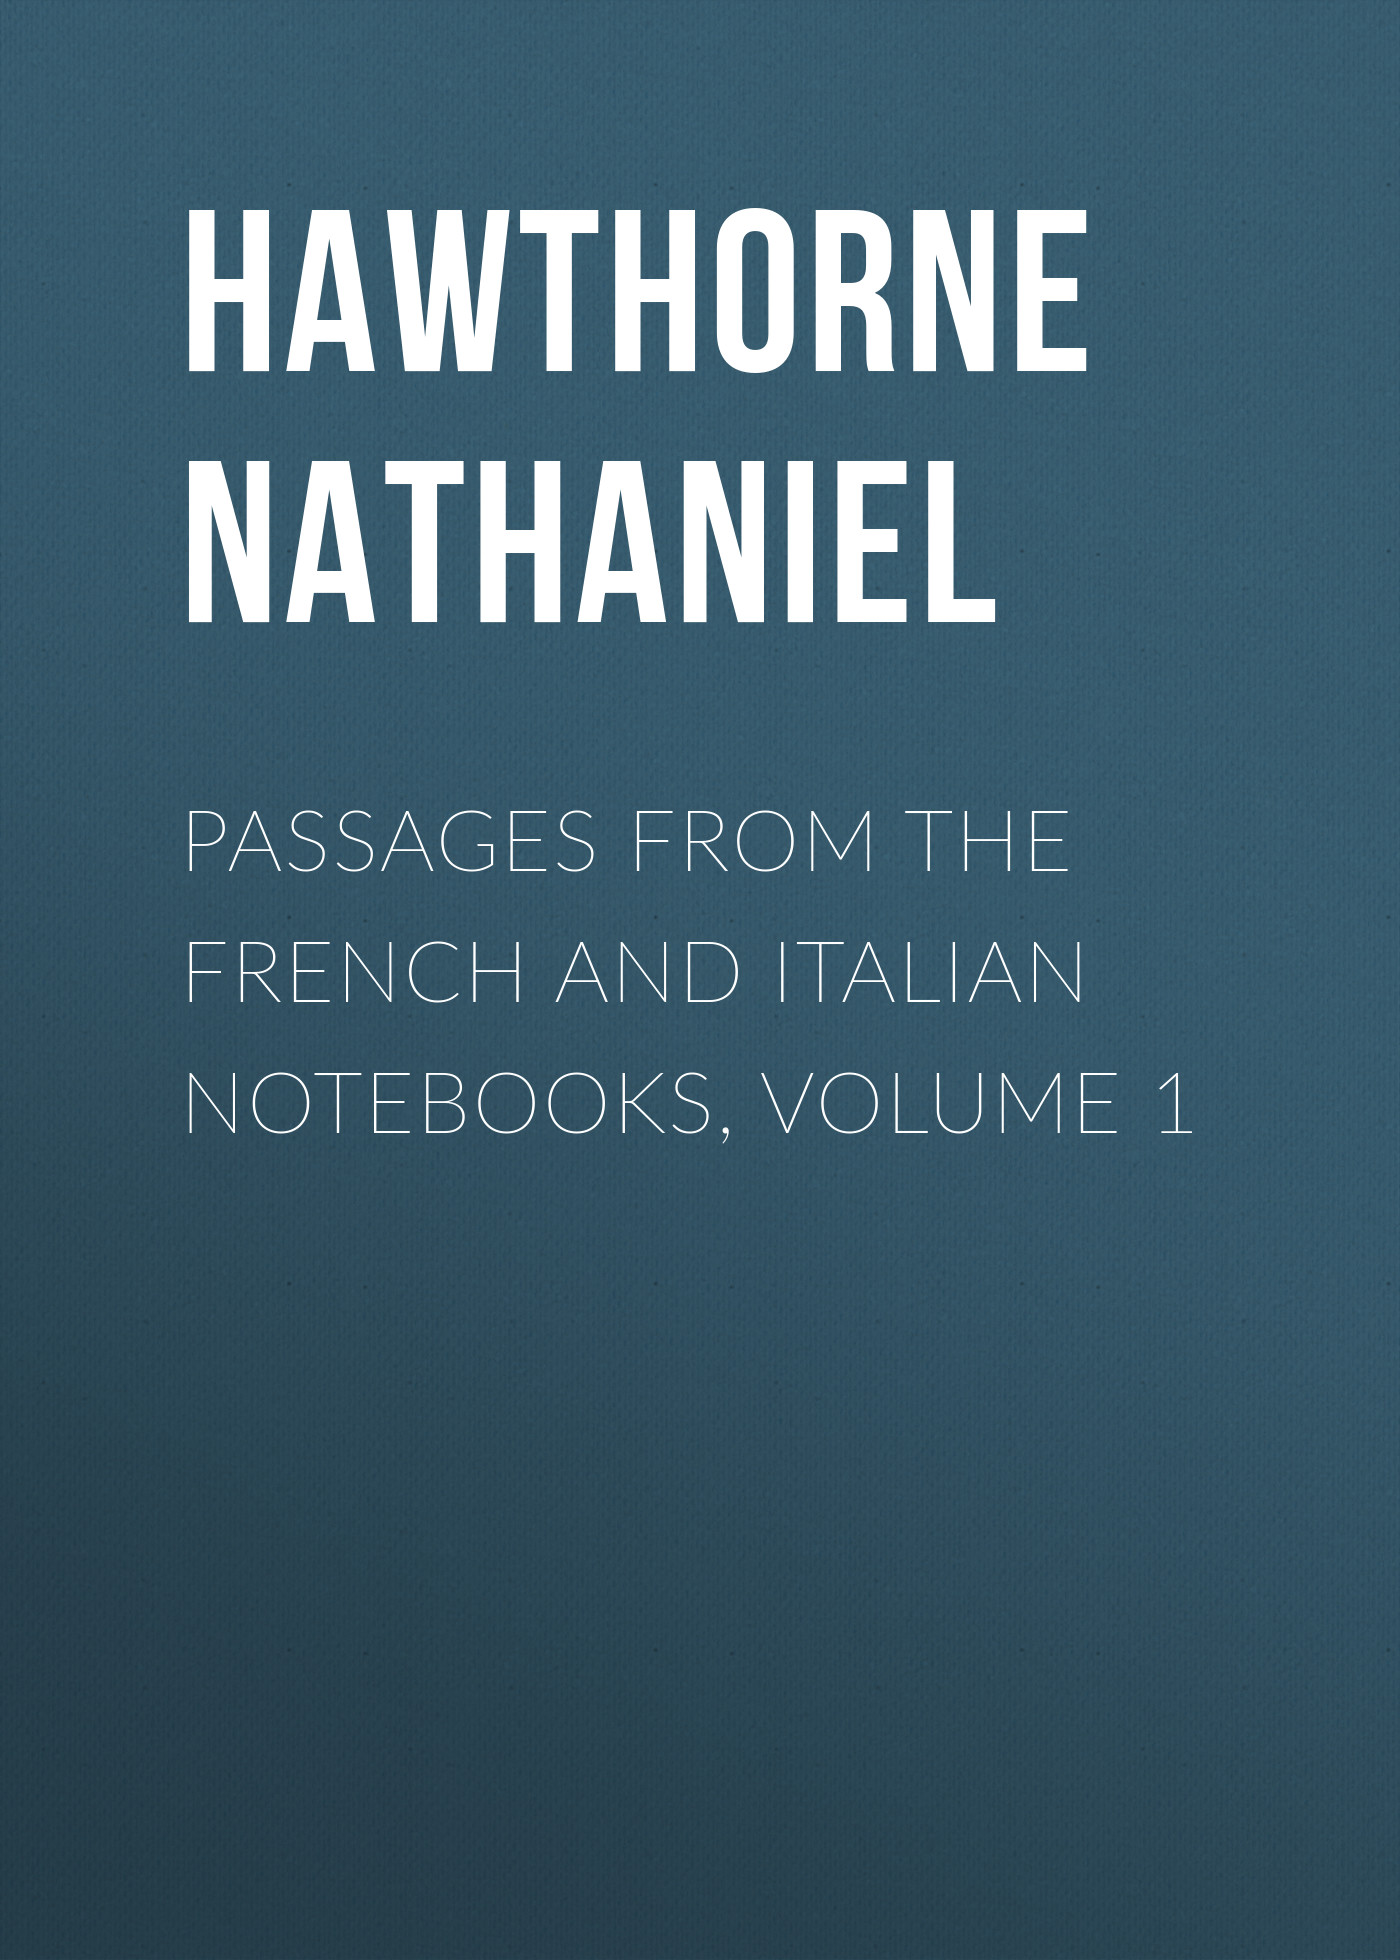 Hawthorne Nathaniel Passages from the French and Italian Notebooks, Volume 1 fromthenon 365 notebooks and journals faux leather cover personal daily monthly weekly planner kawaii stationery school supplies